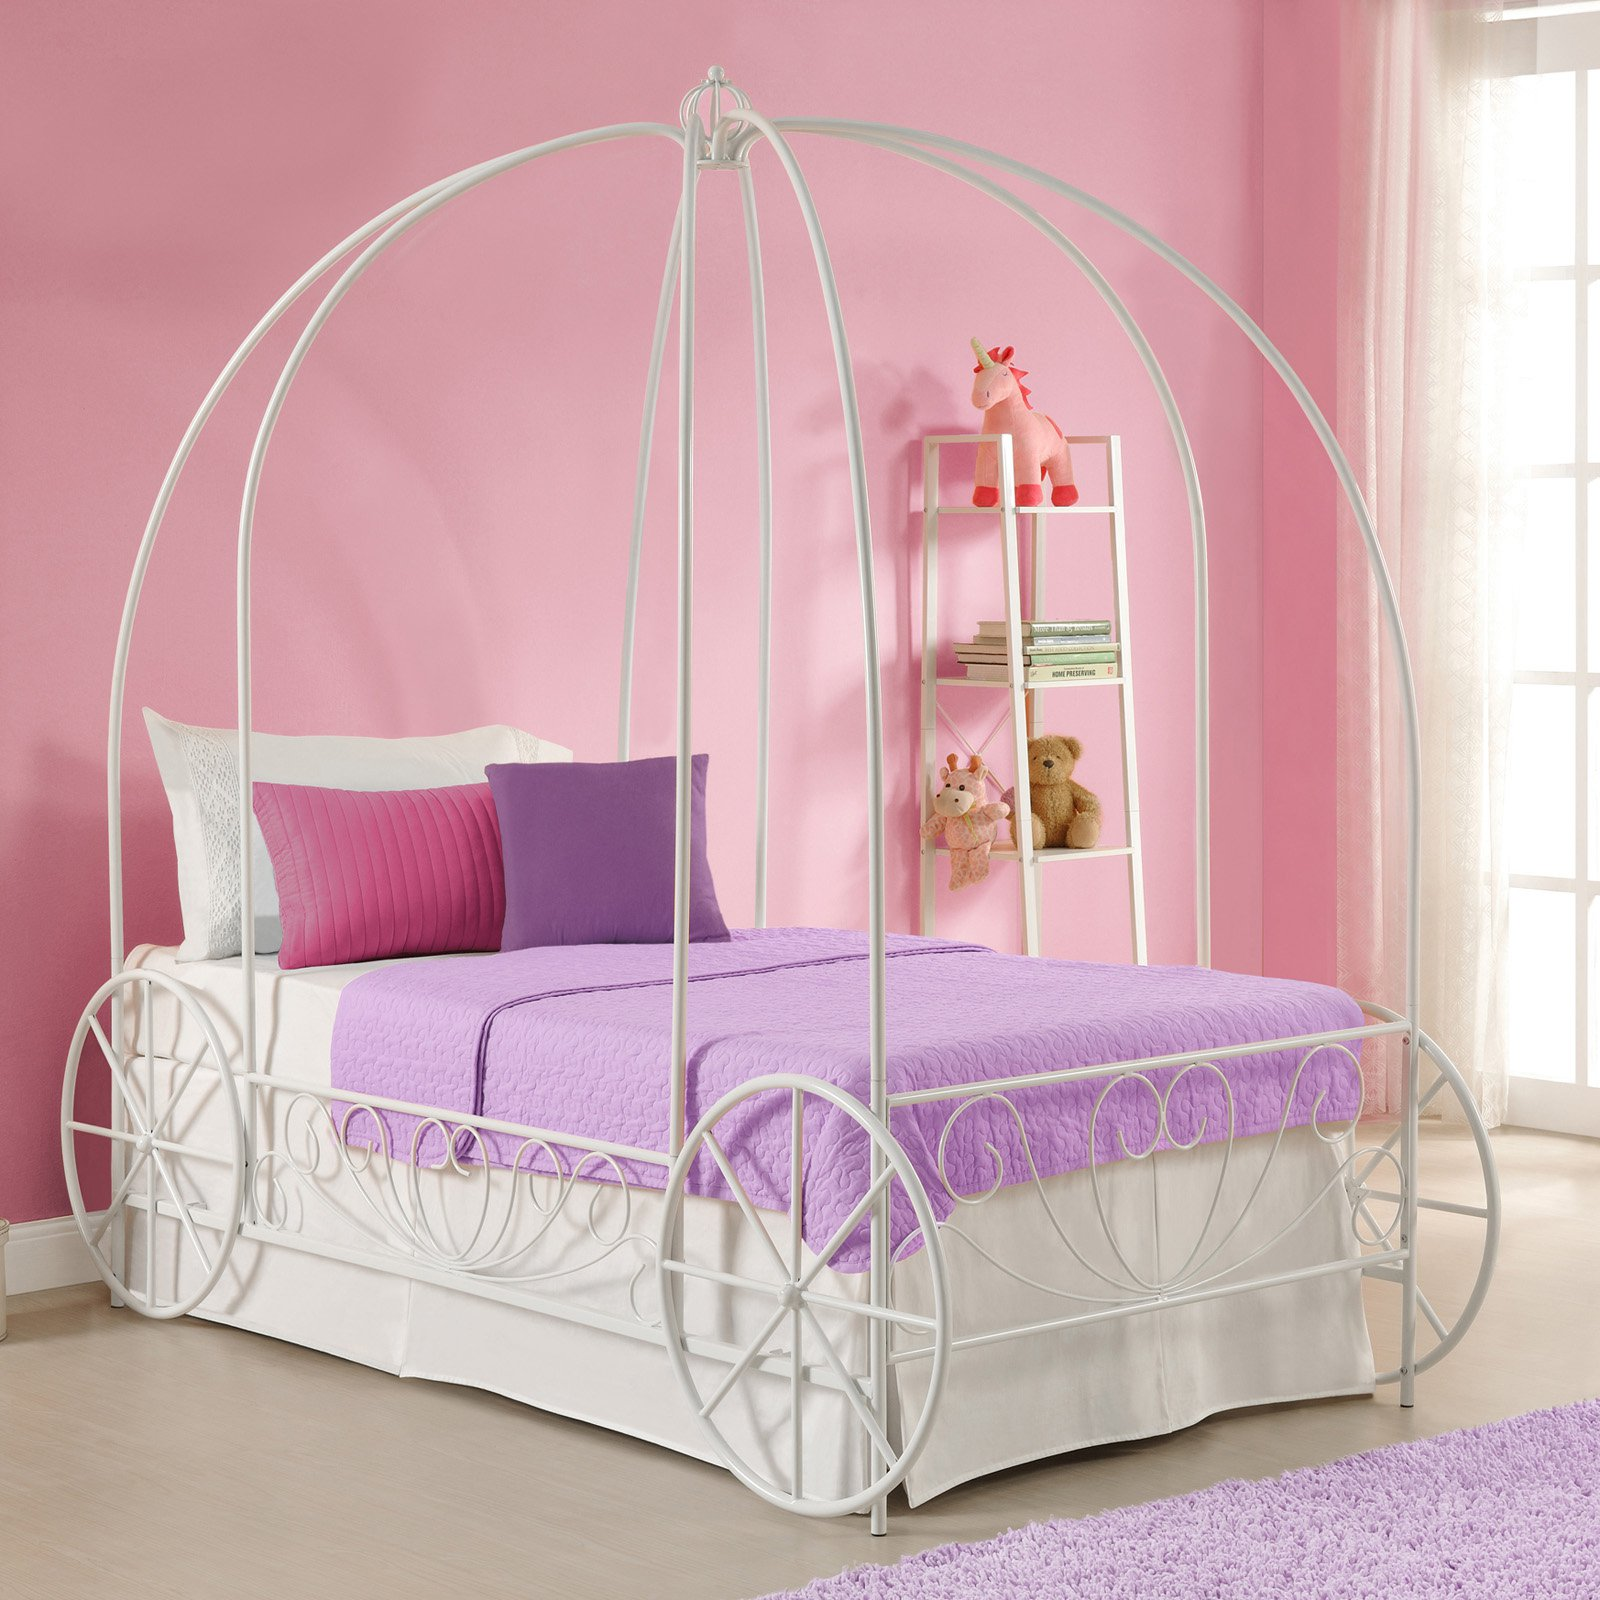 Details about Twin Size Princess Carriage Bed in Lavender Purple Girls Canopy Bed So Cute!! & Twin Size Princess Carriage Bed in Lavender Purple Girls Canopy Bed ...